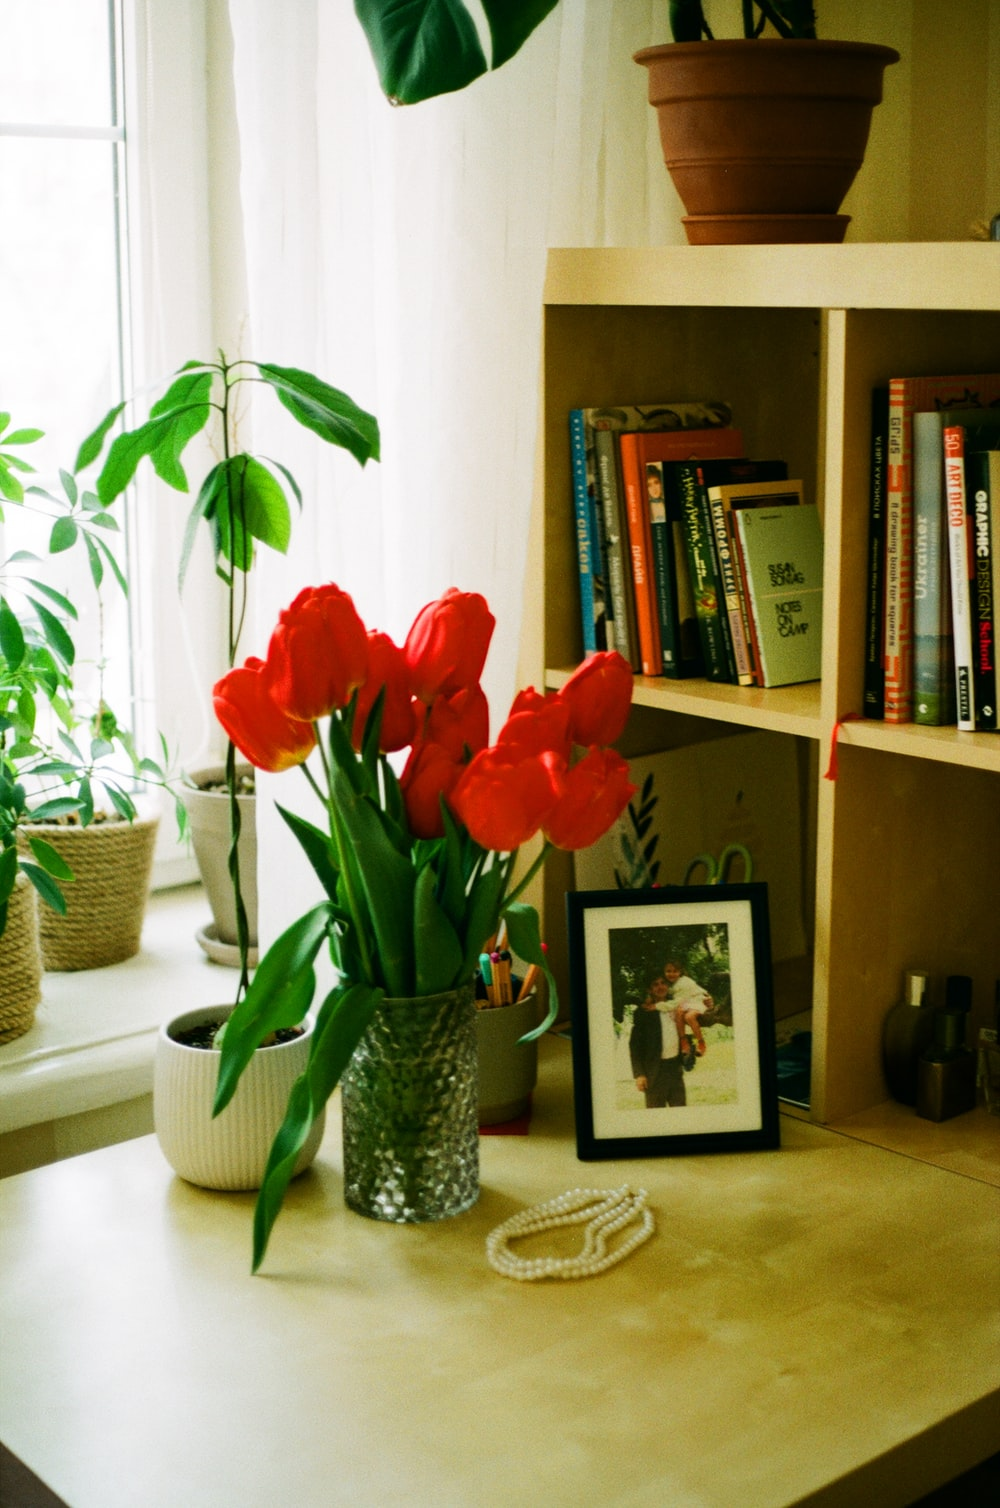 red tulips in vase beside picture frame